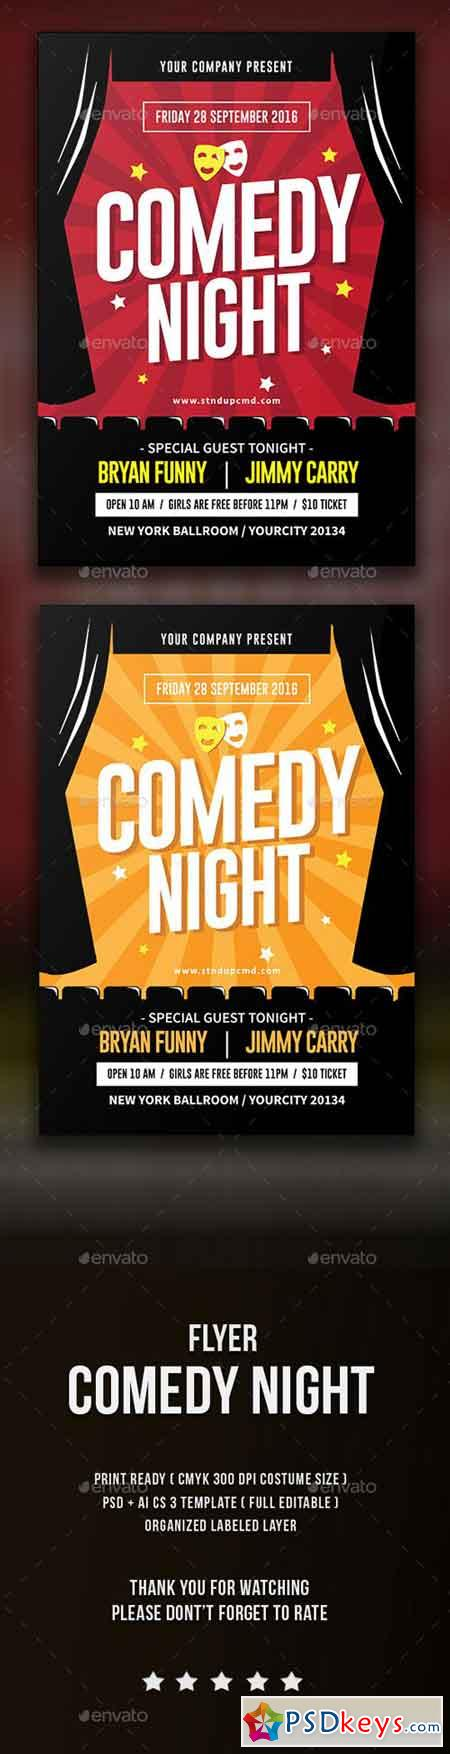 comedy night flyer 15753696 free download photoshop